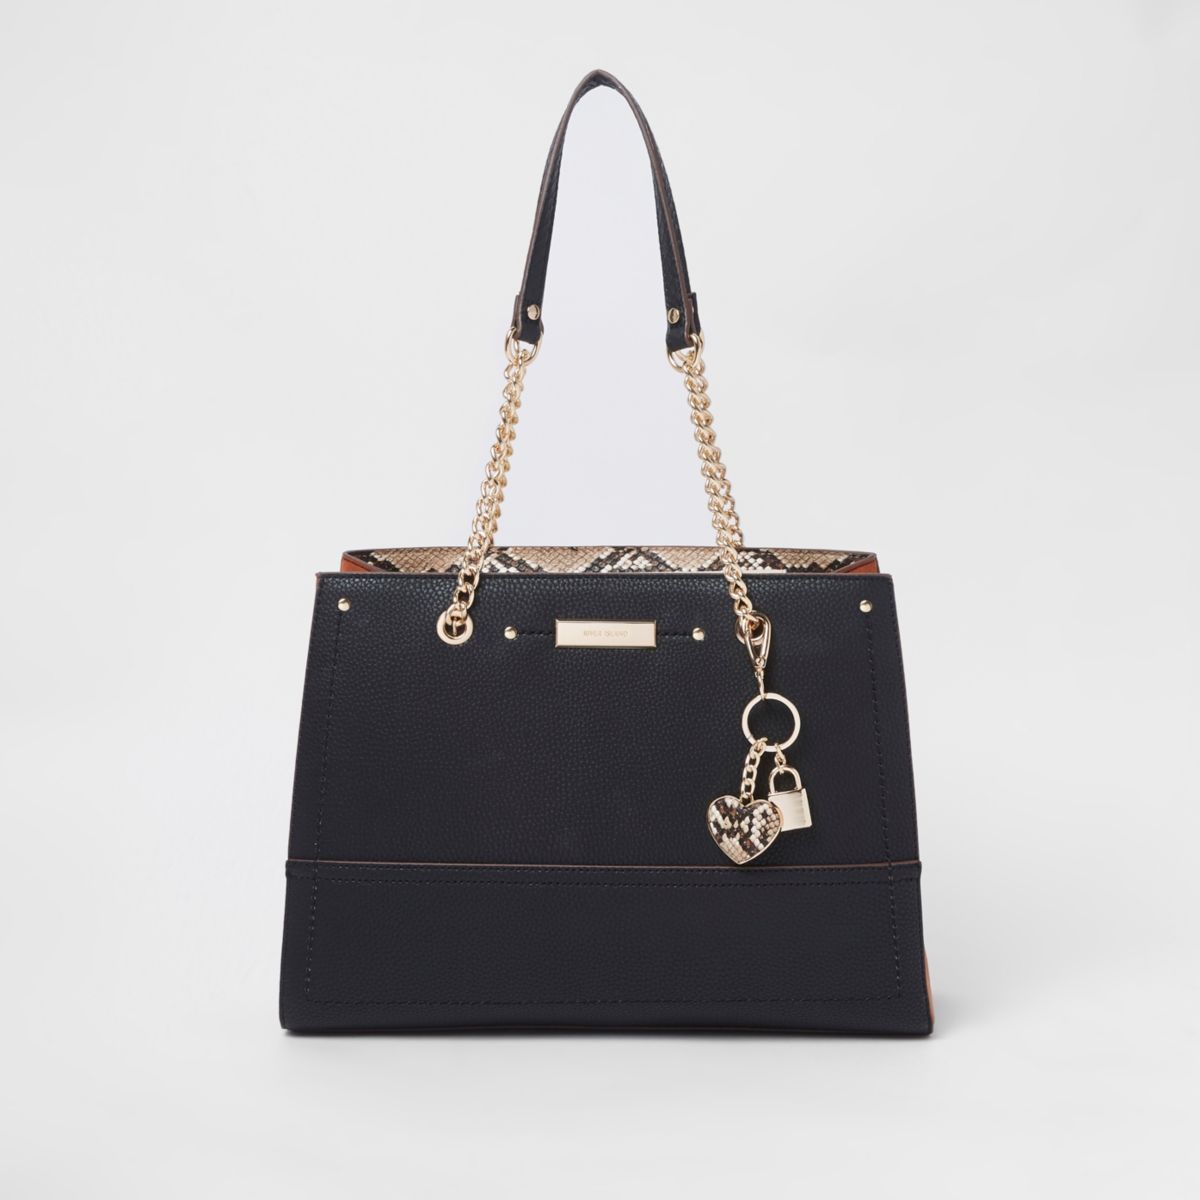 Black charm structured chain tote bag